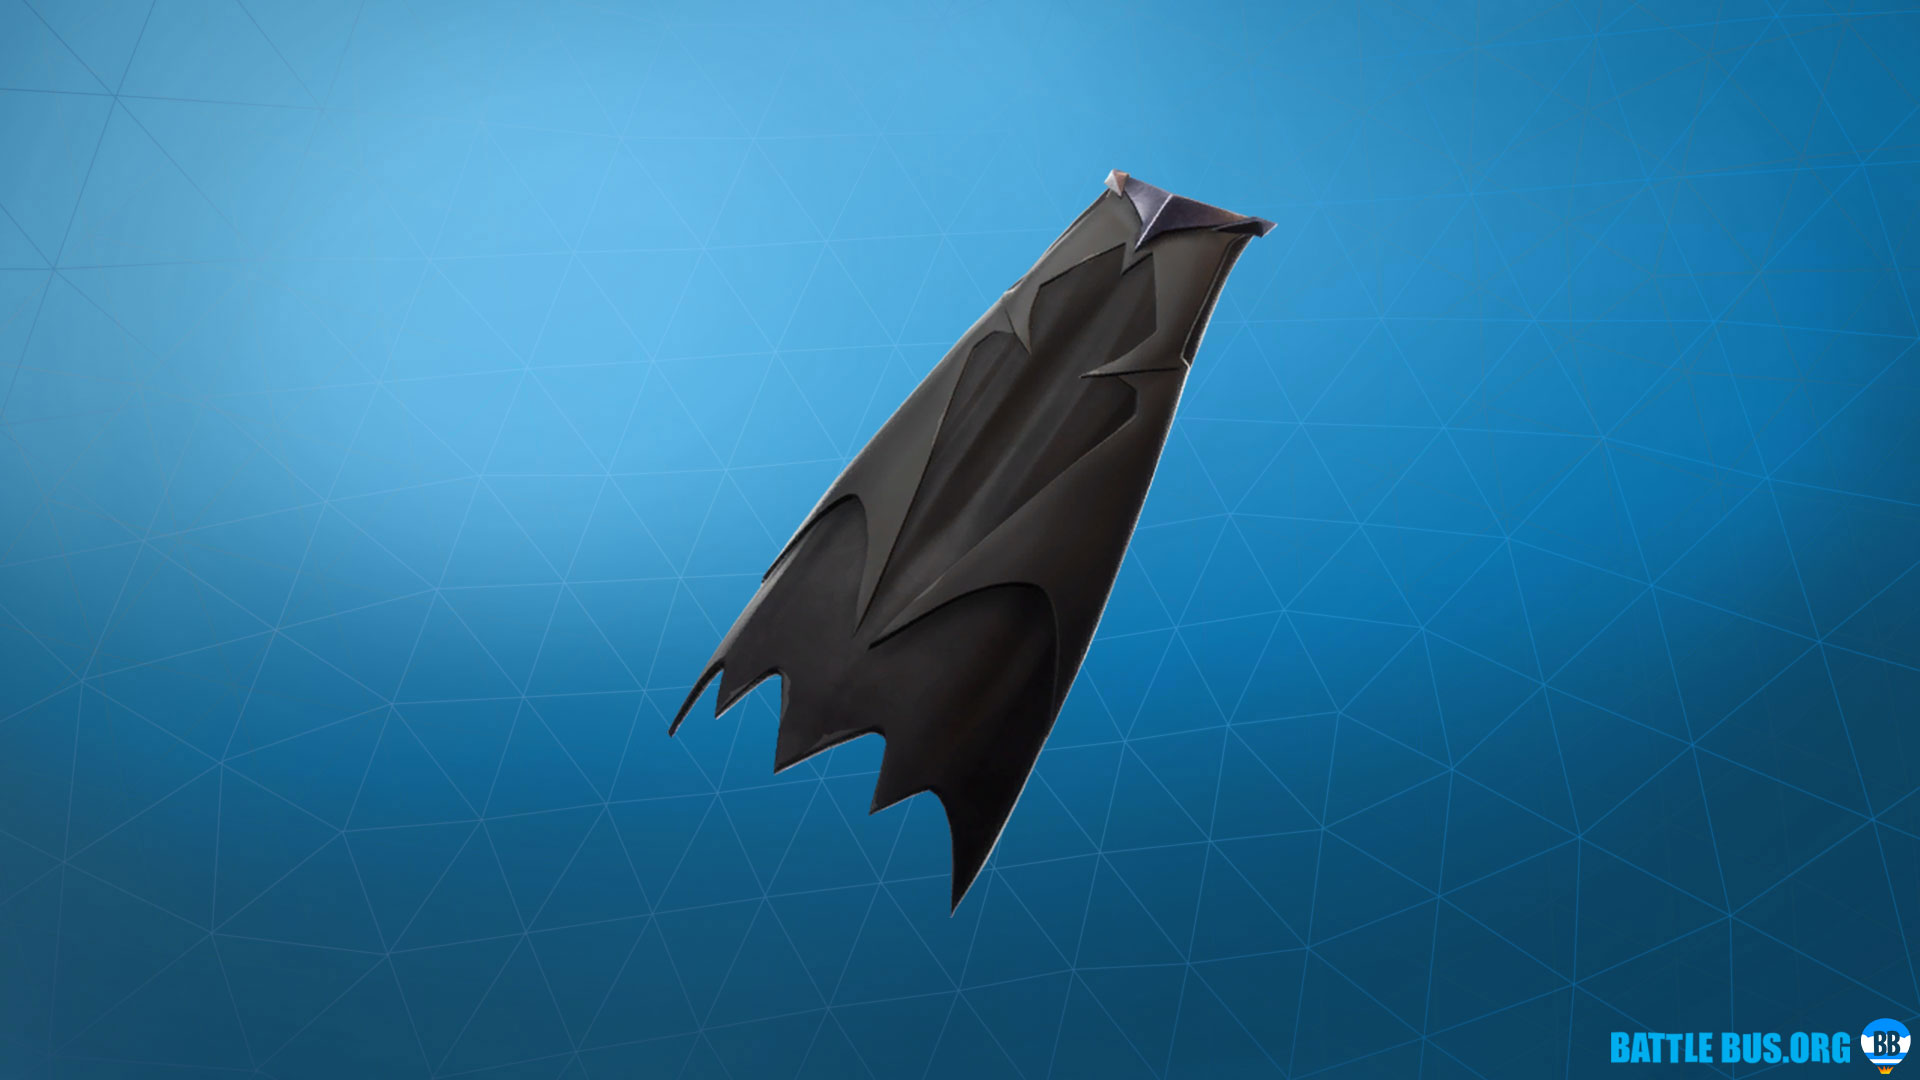 Fortnite Cape coven cape - back bling -nite coven set - fortnite news